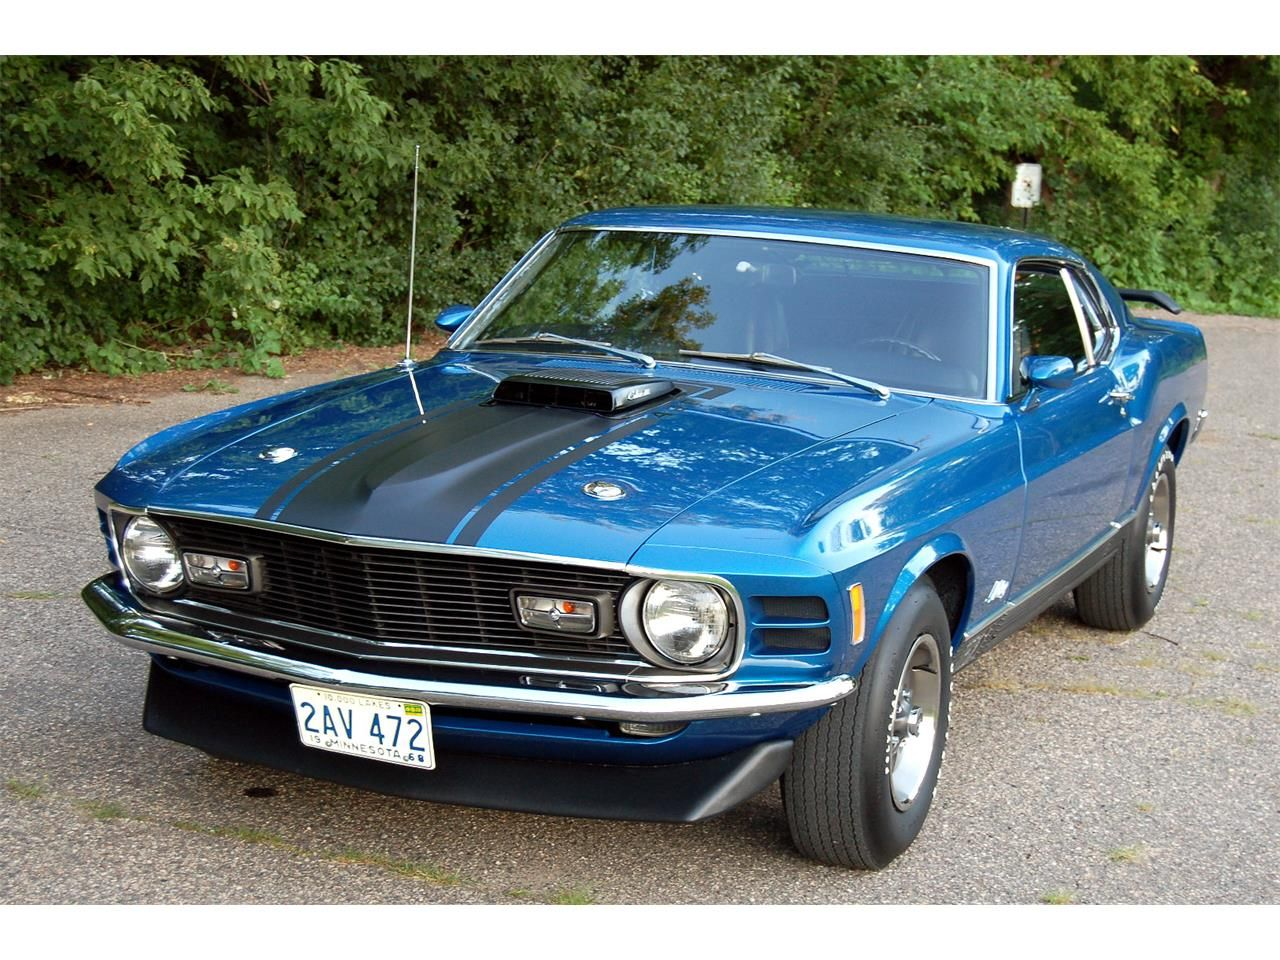 Ford Mustang Mach Classiccars Com Sport Cars